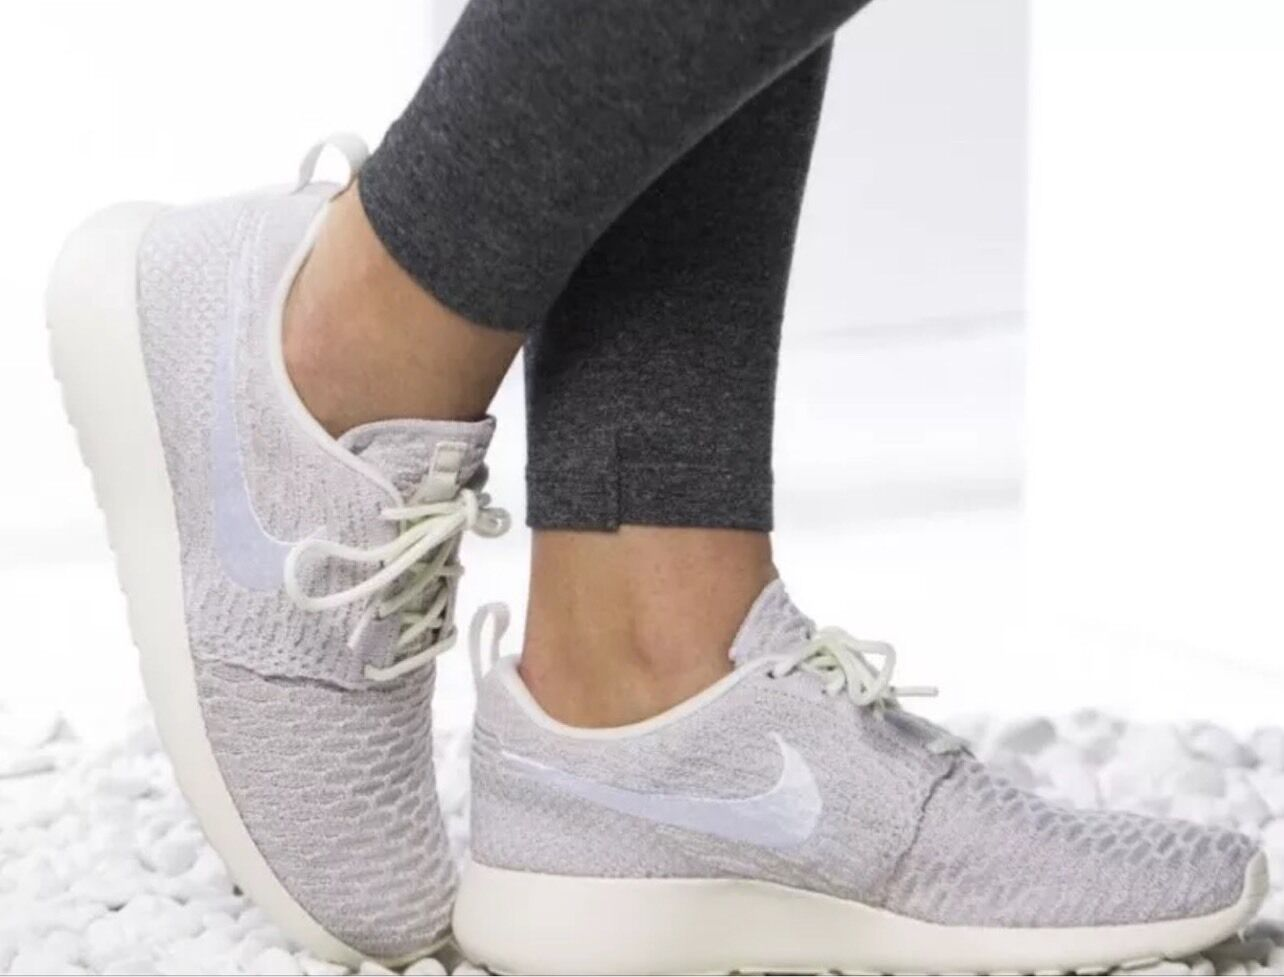 29ac6fcb3686 Nike Women s Roshe One Flyknit Shoes Size 12 Sail White String ...